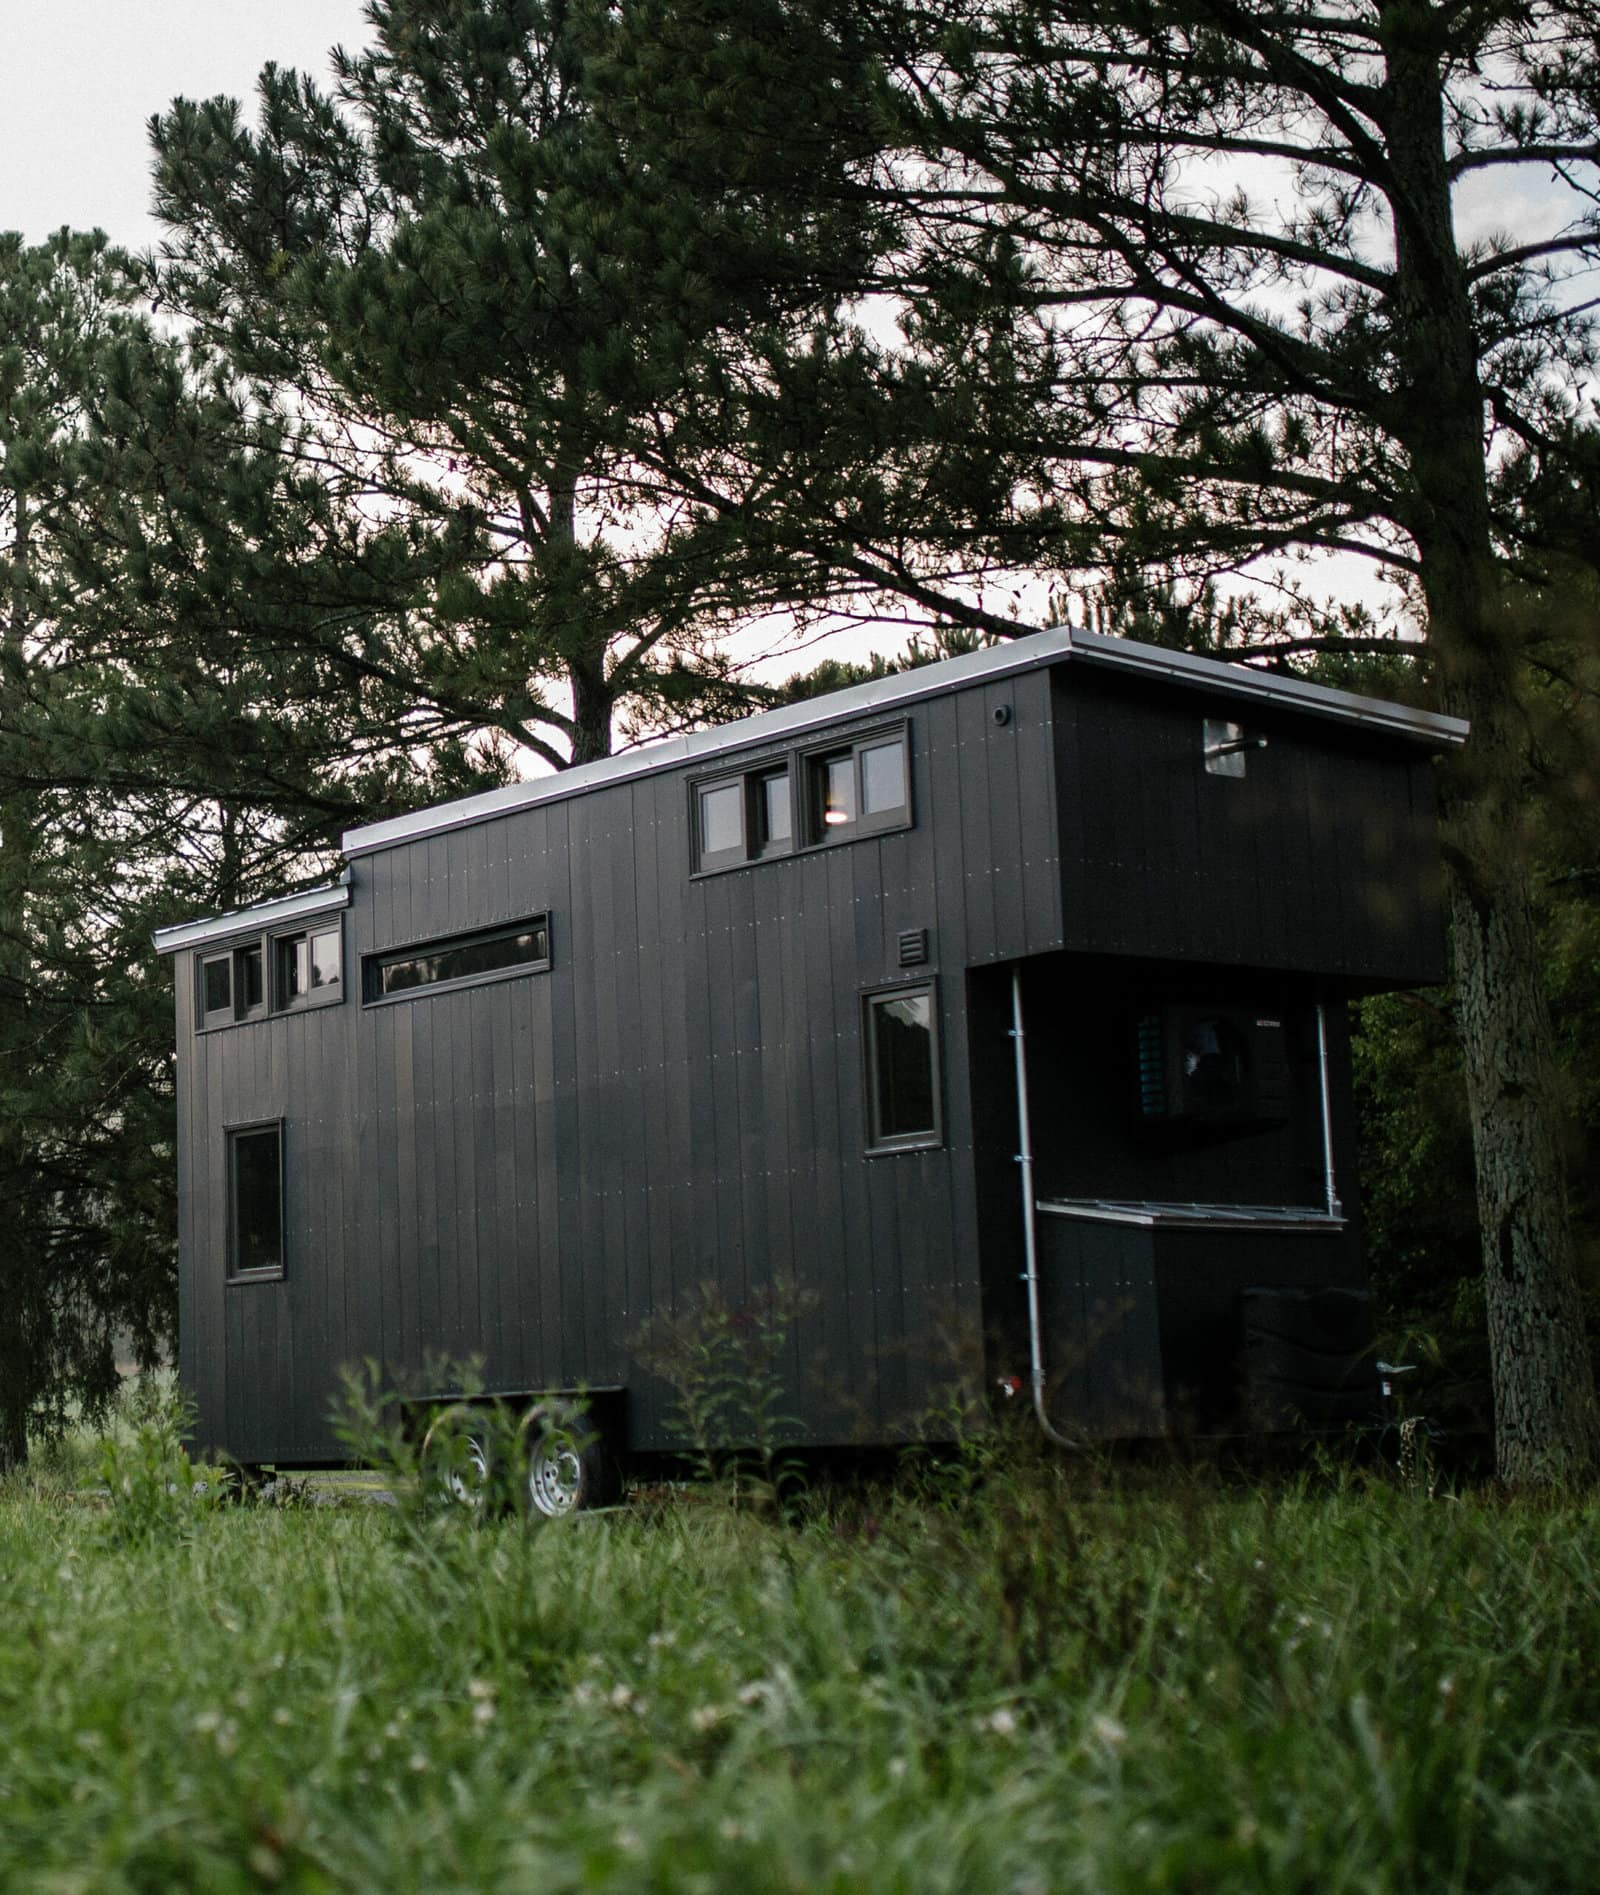 Wind River Tiny Homes - The Rook